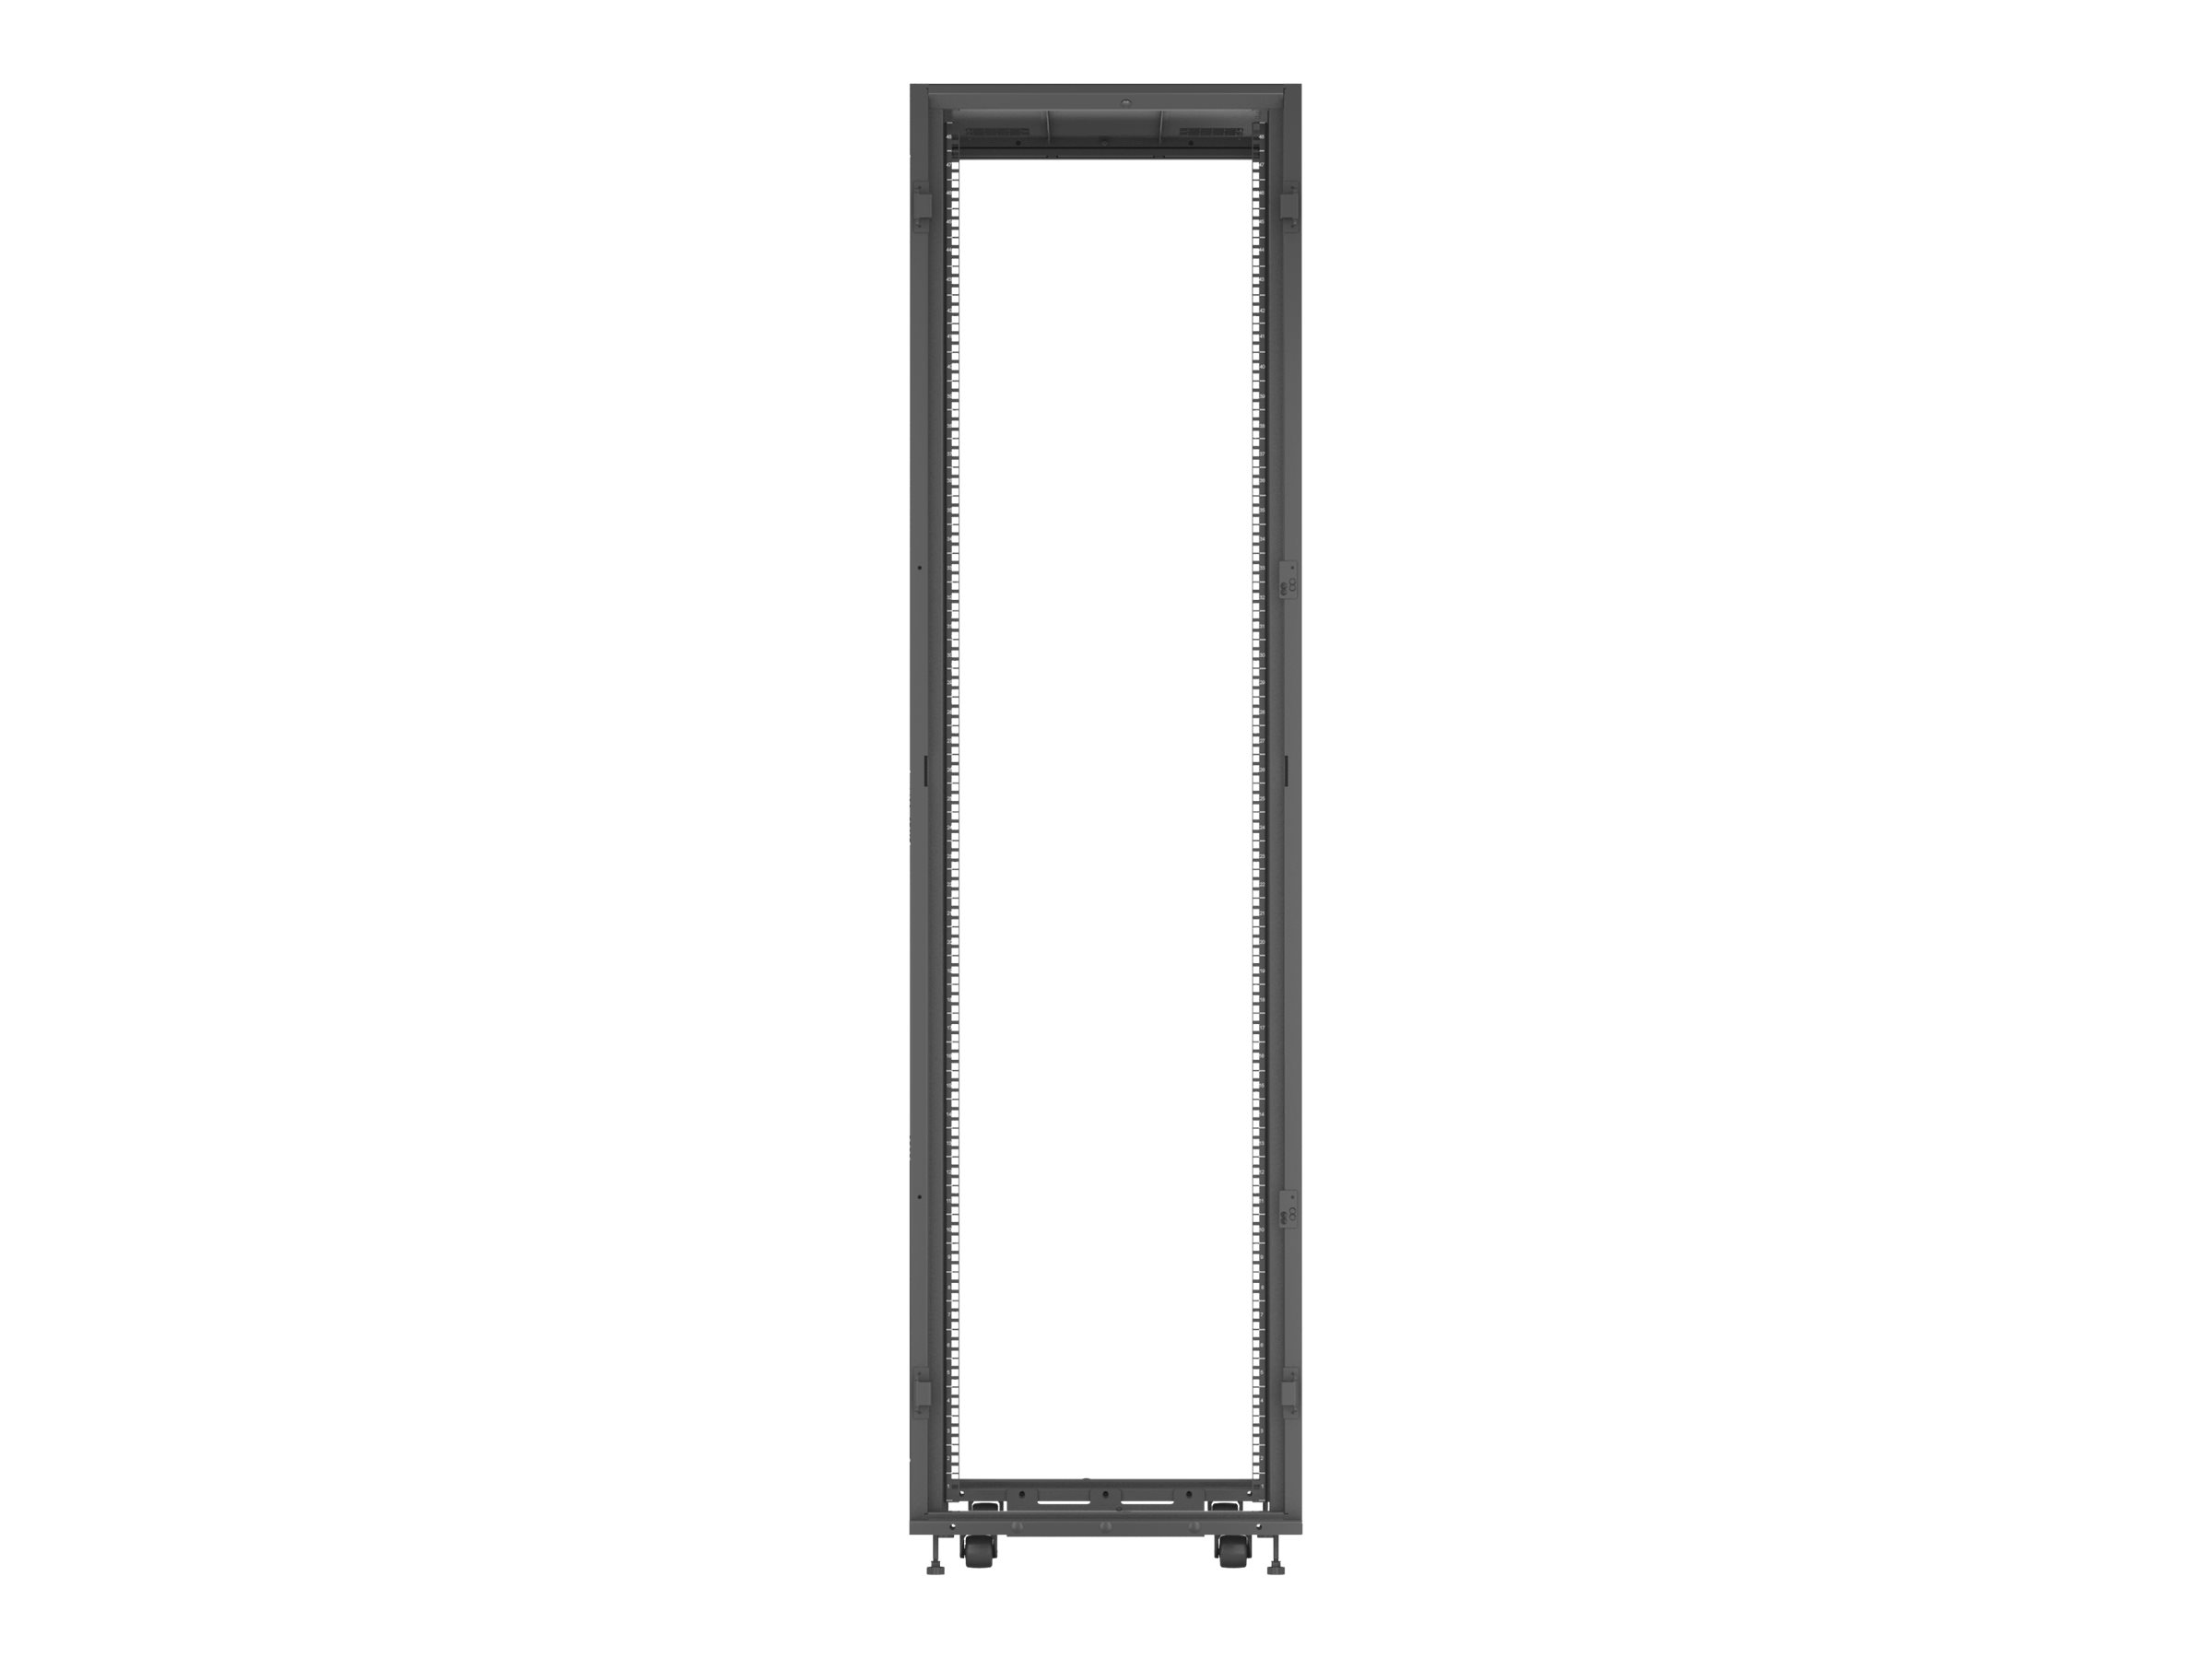 Vertiv VR VR3307SP rack - 48U